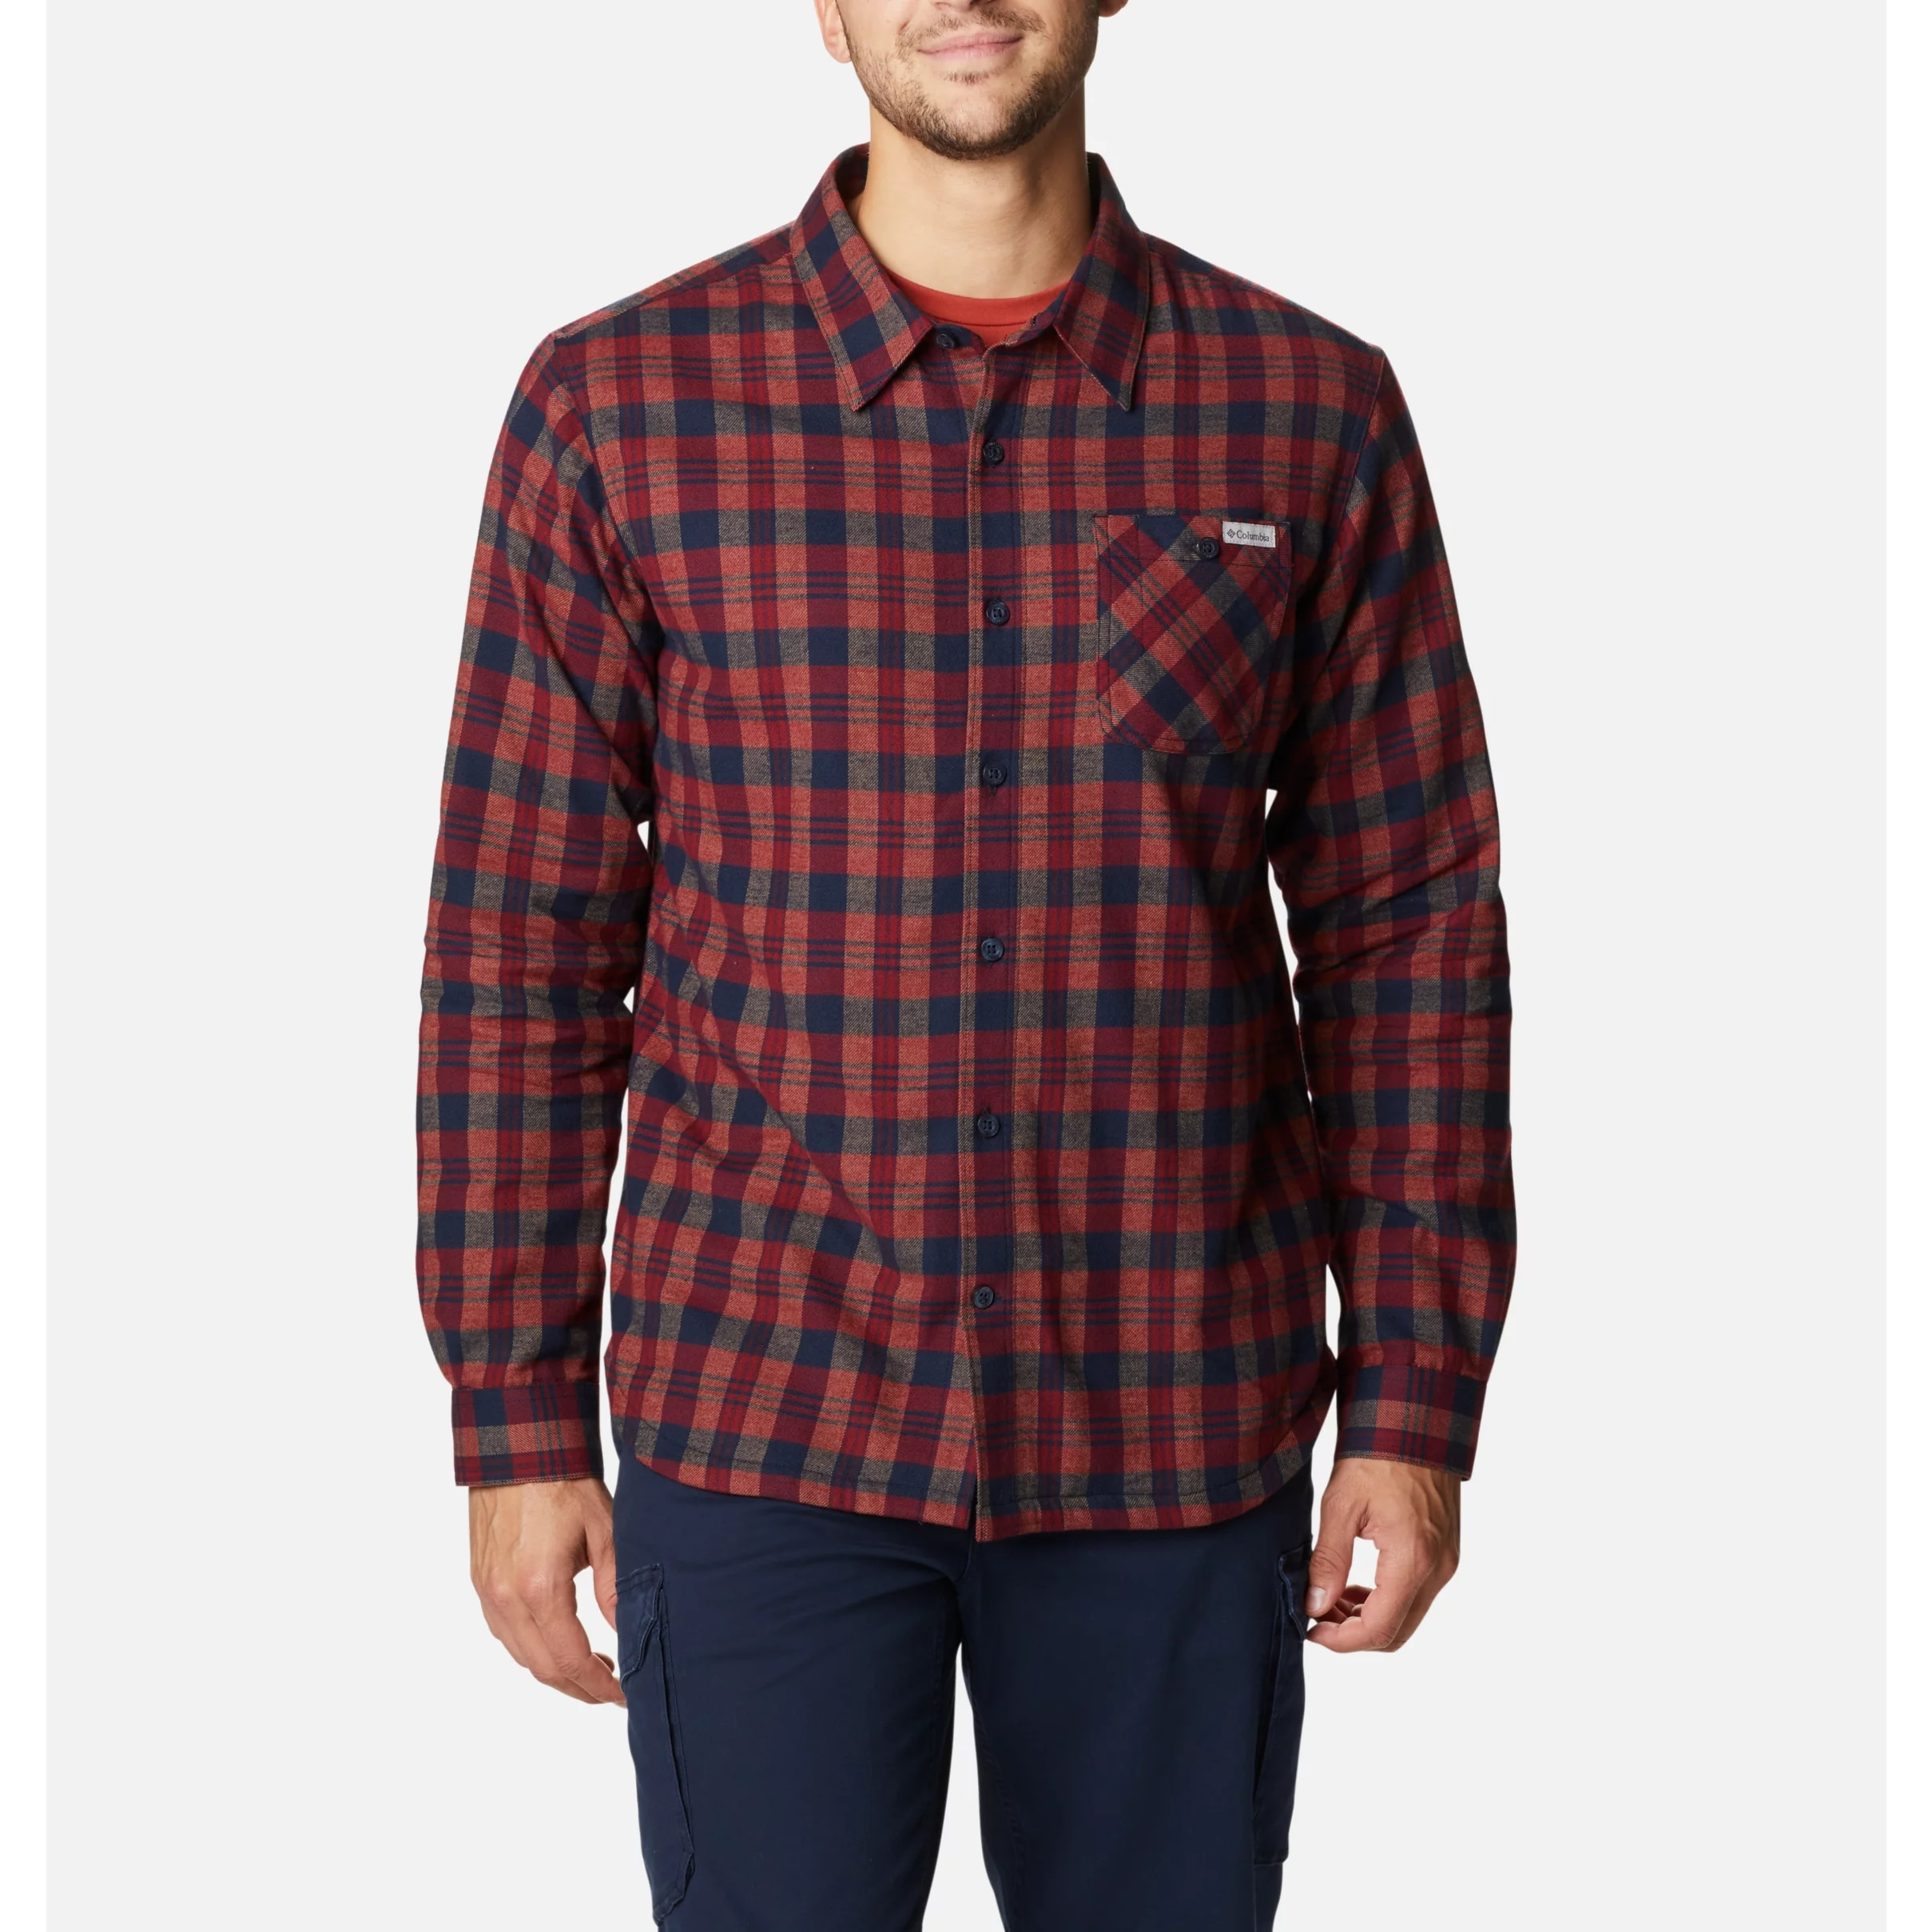 CORNELL WOODS LINED FLANNEL